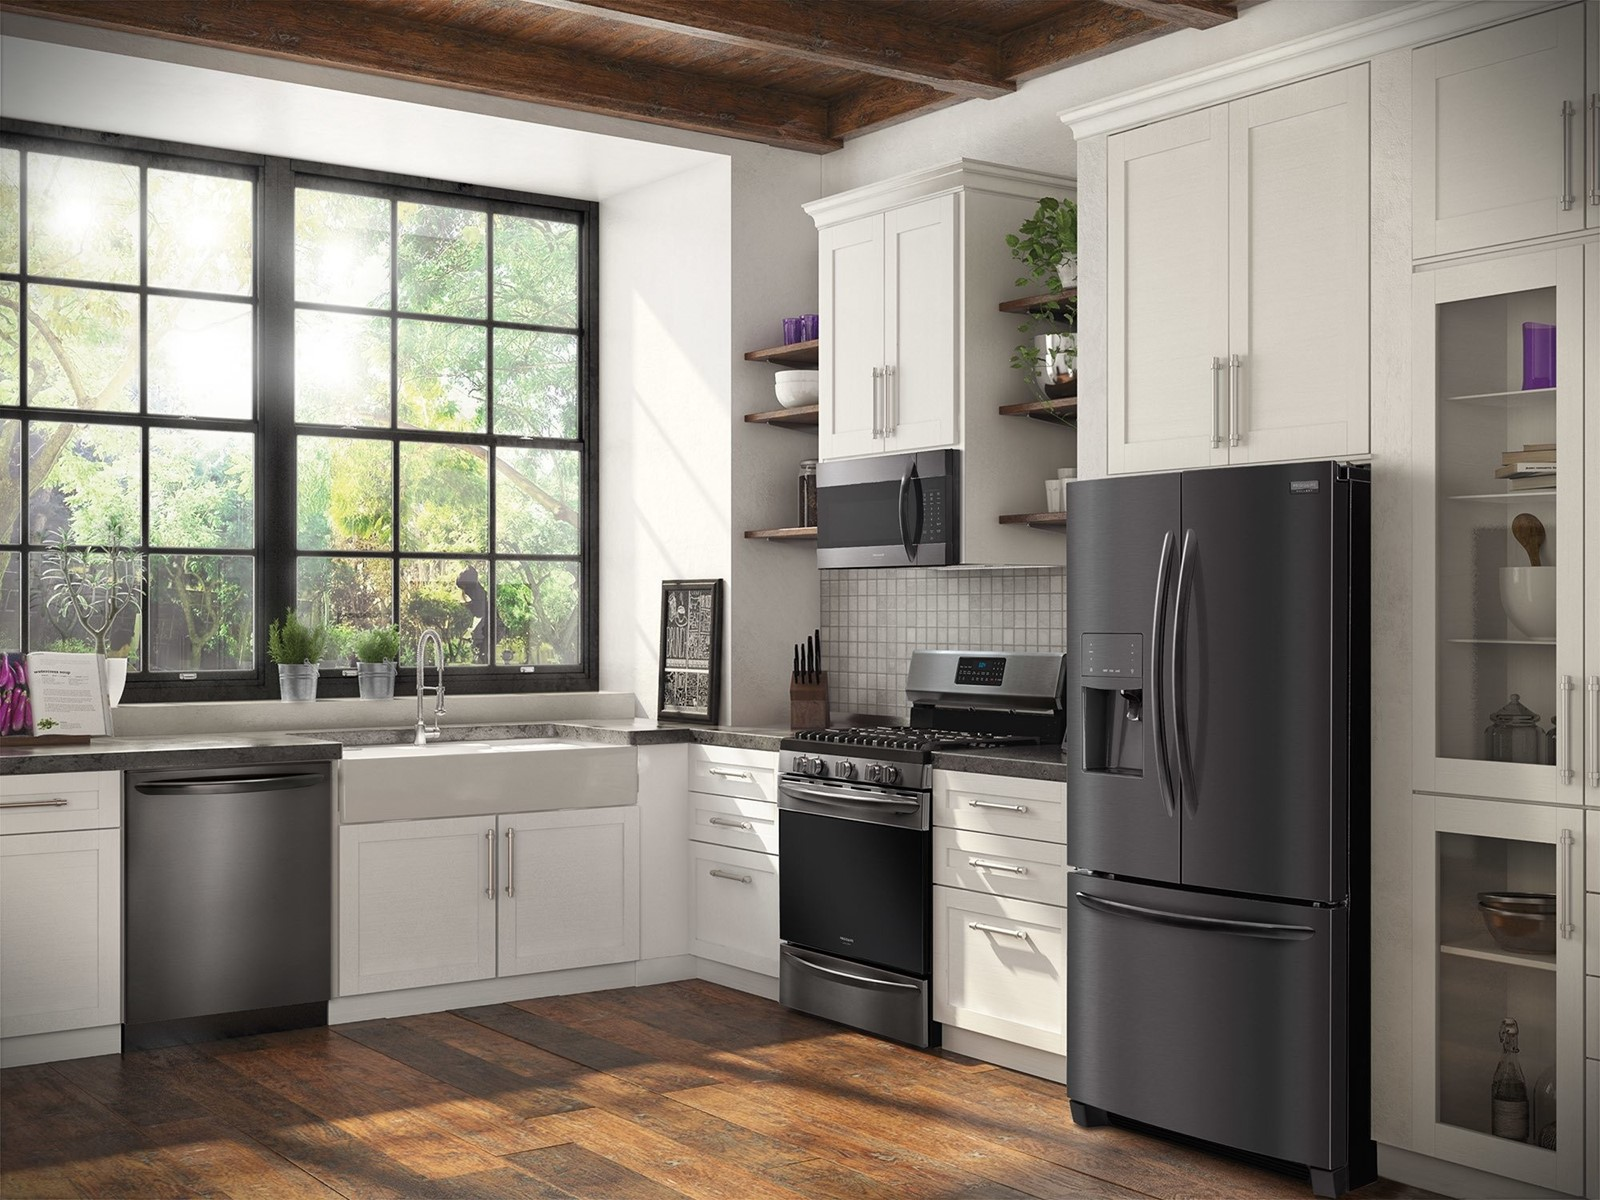 Hottest Trends In Kitchens